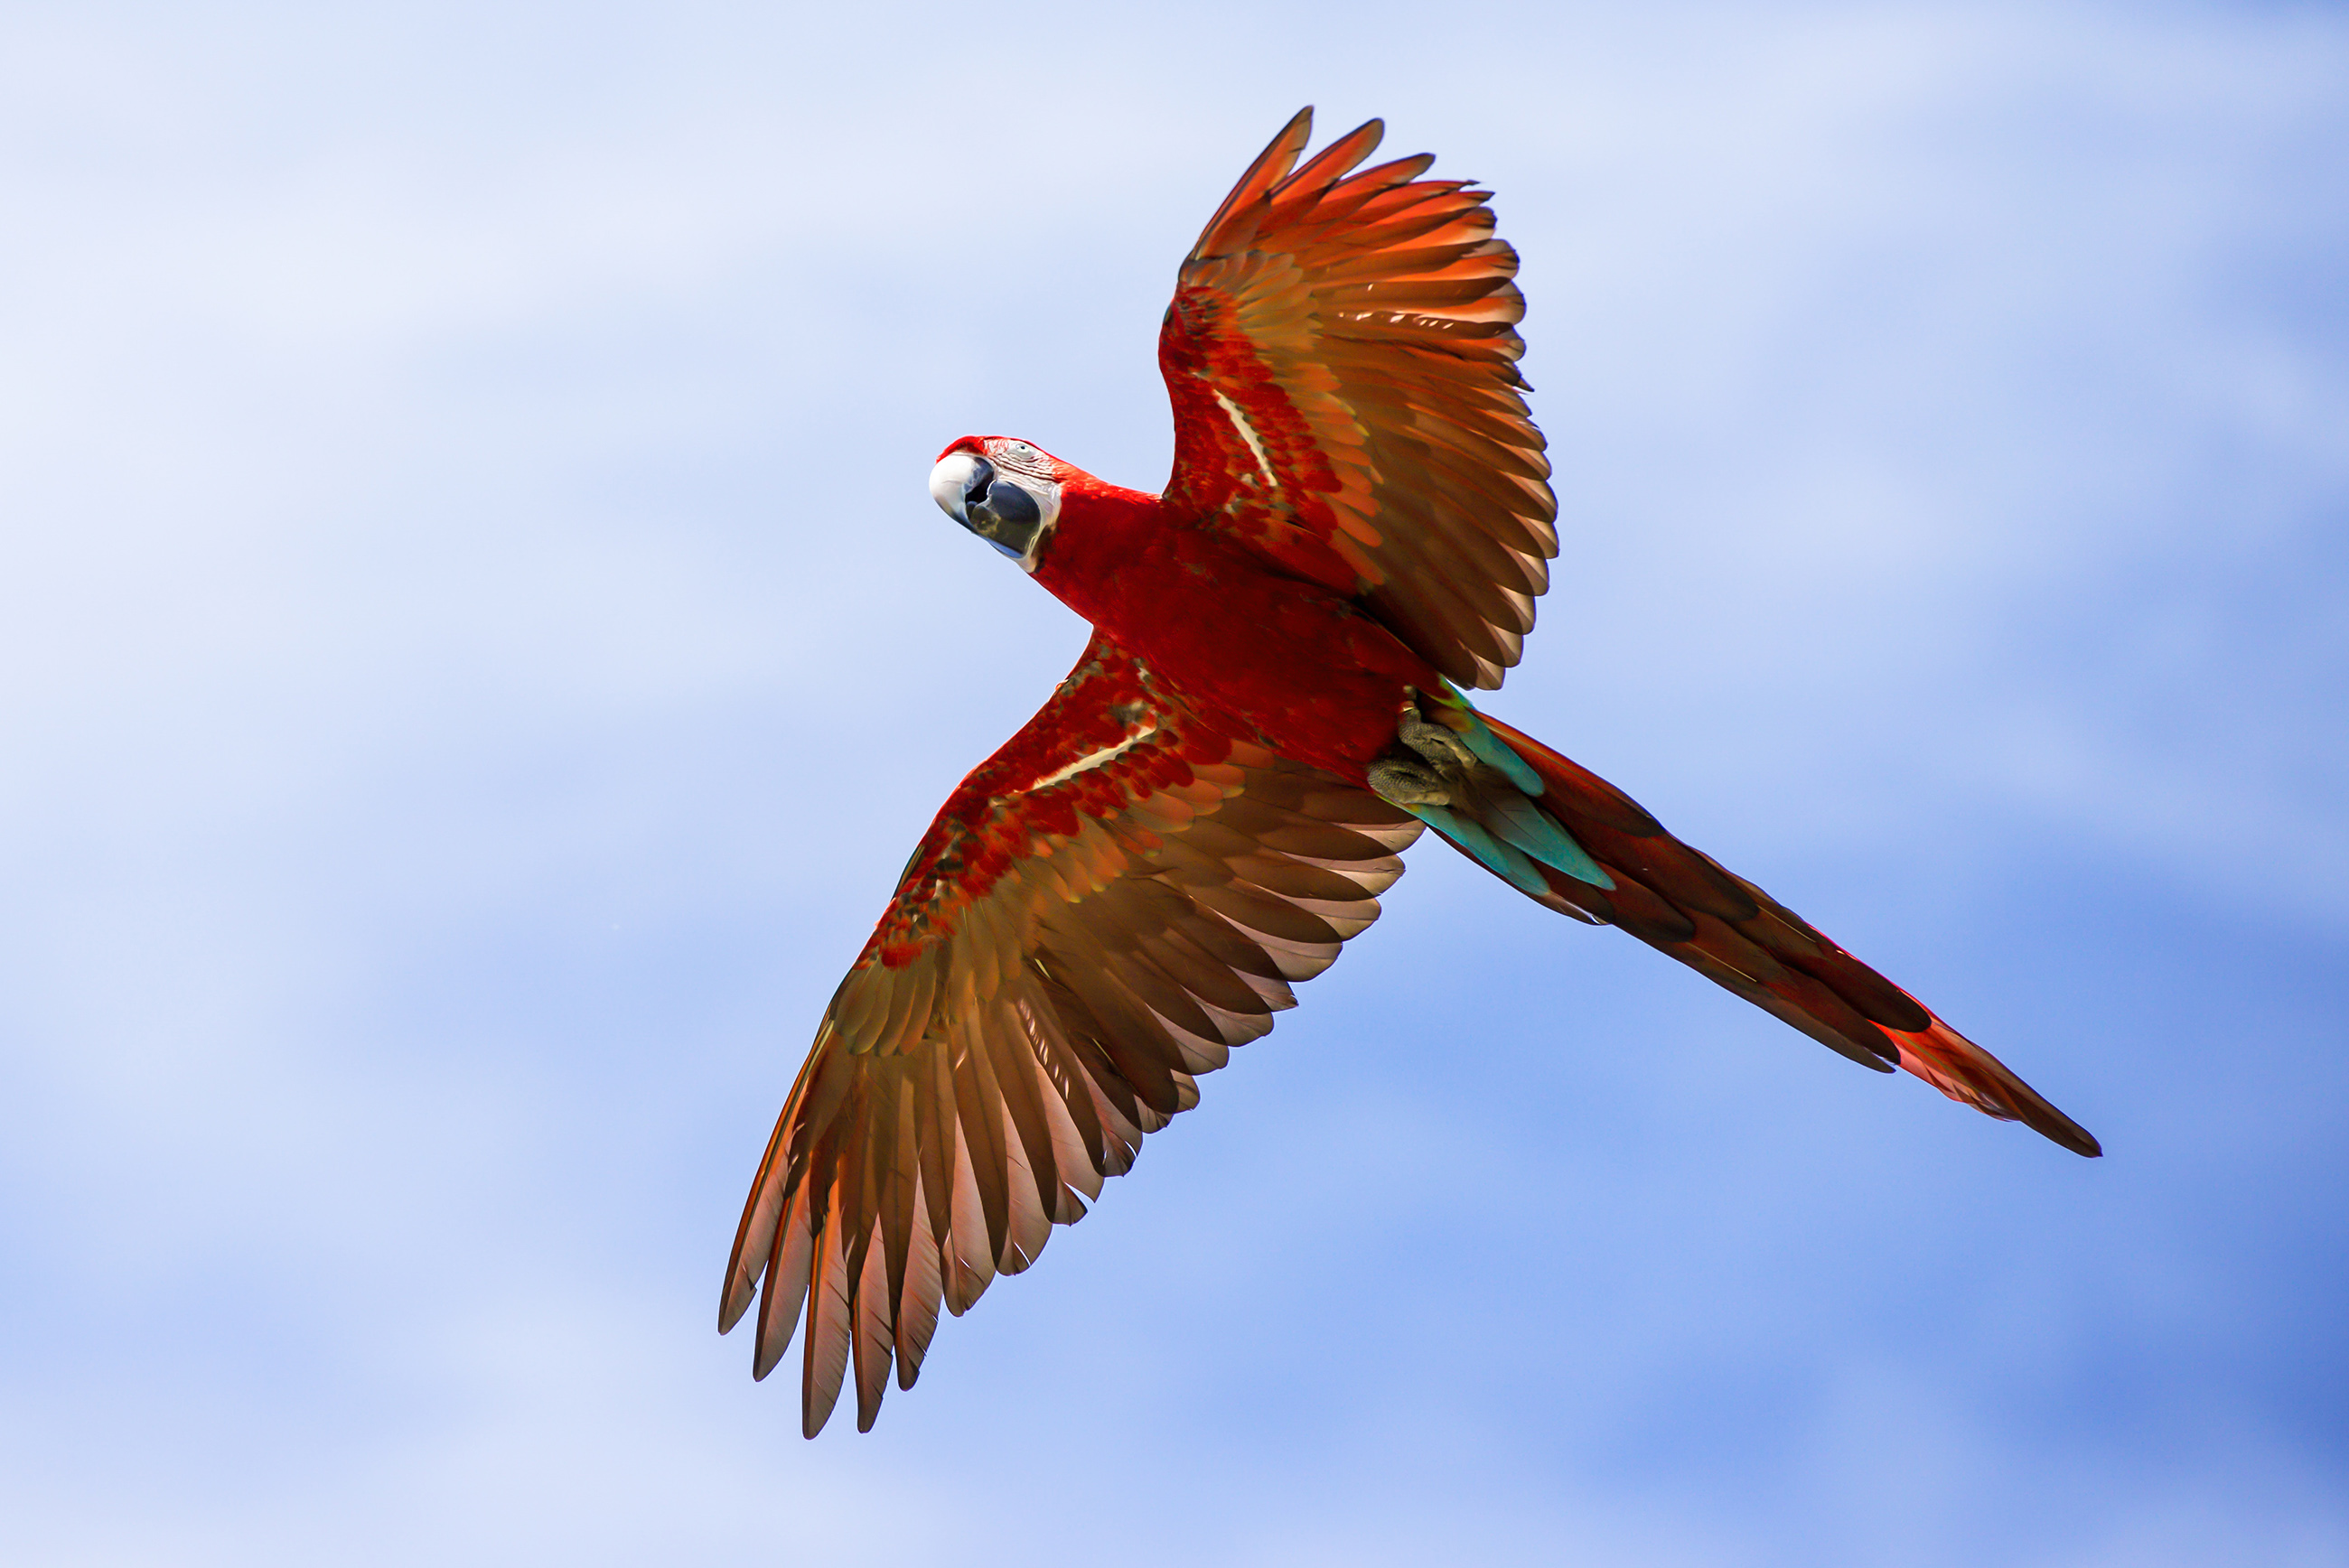 Macaw flying in the air 54380